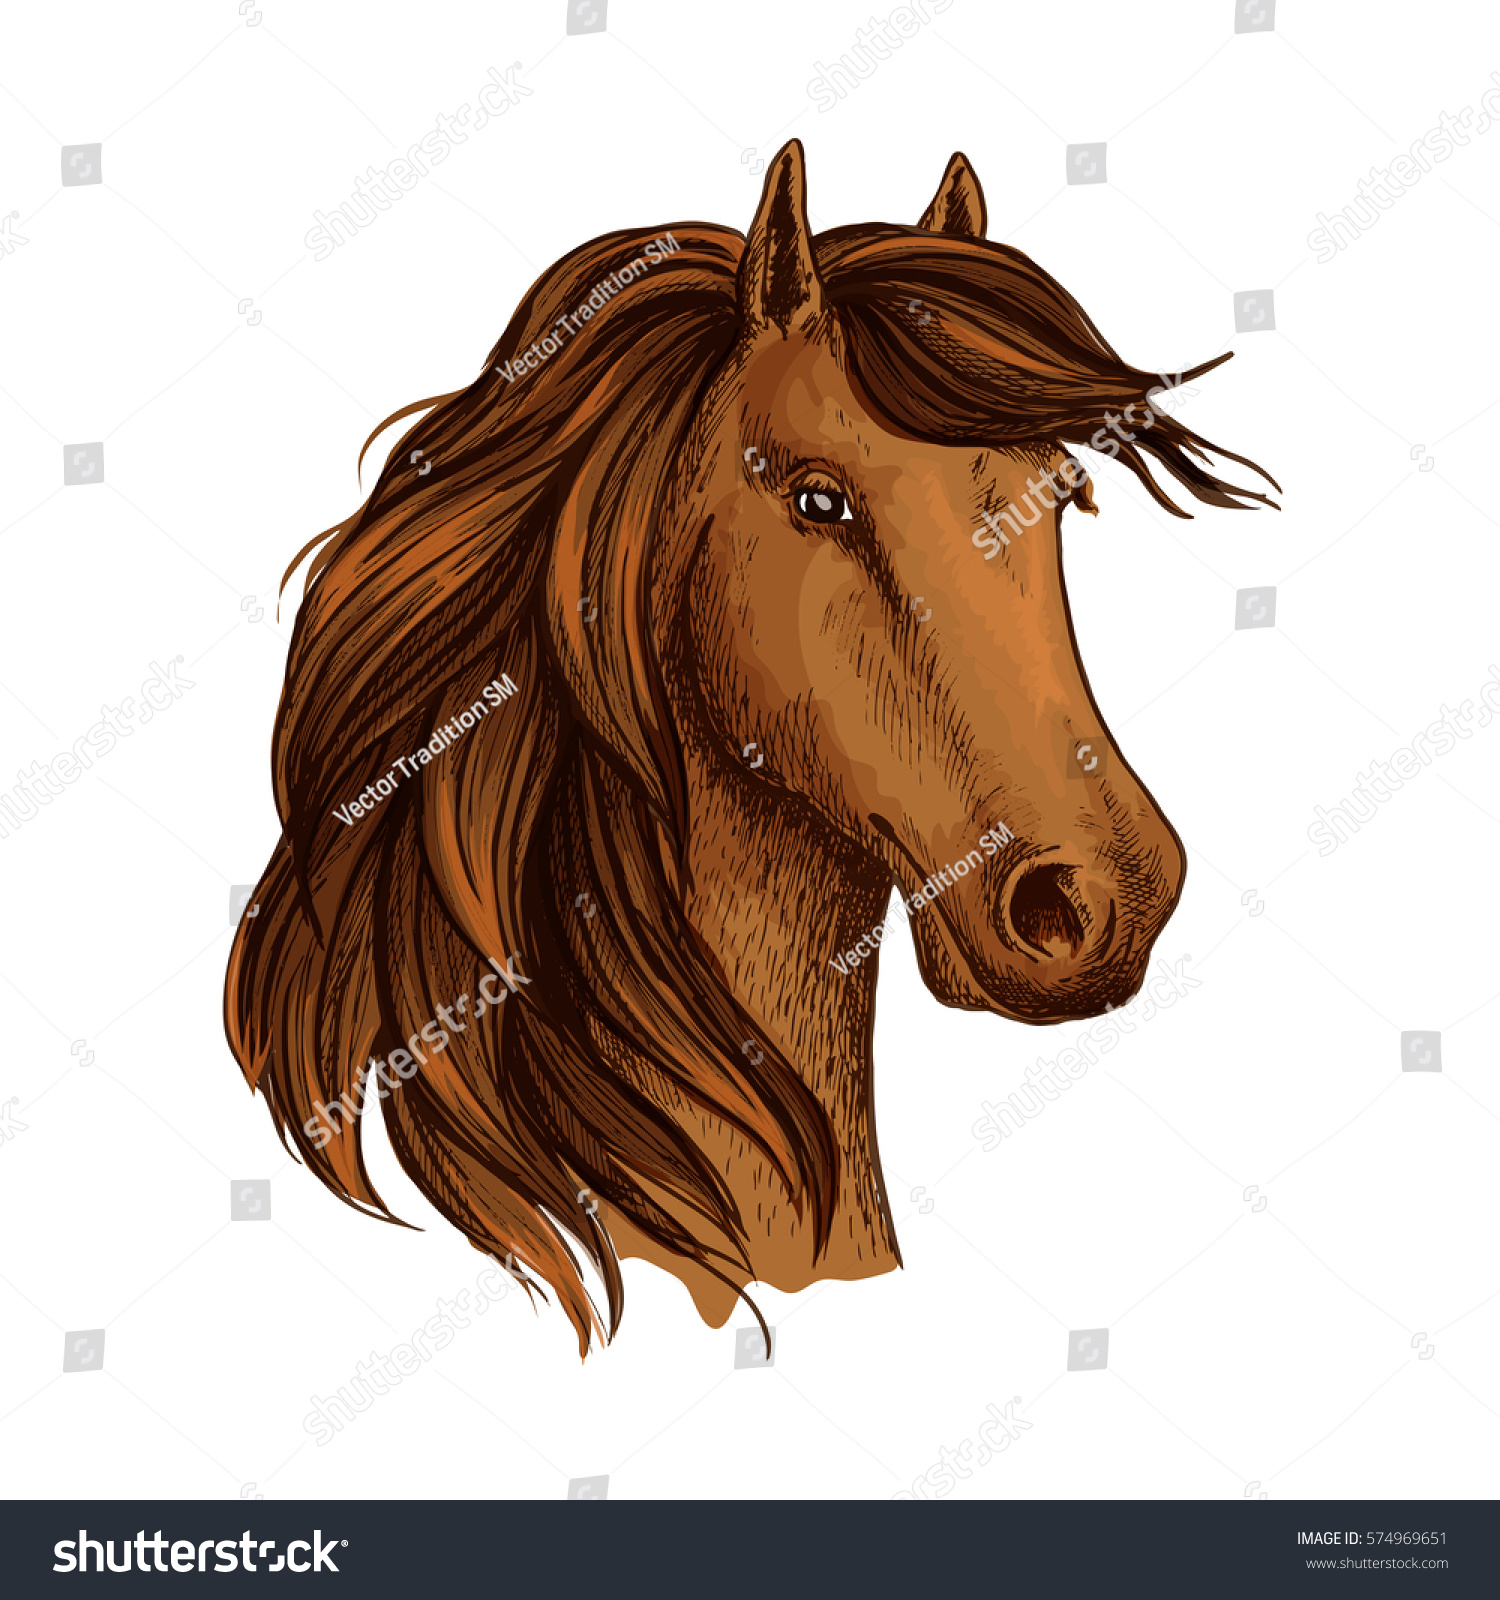 Horse Mustang Foal Young Equine Mare Stock Vector Royalty Free 574969651